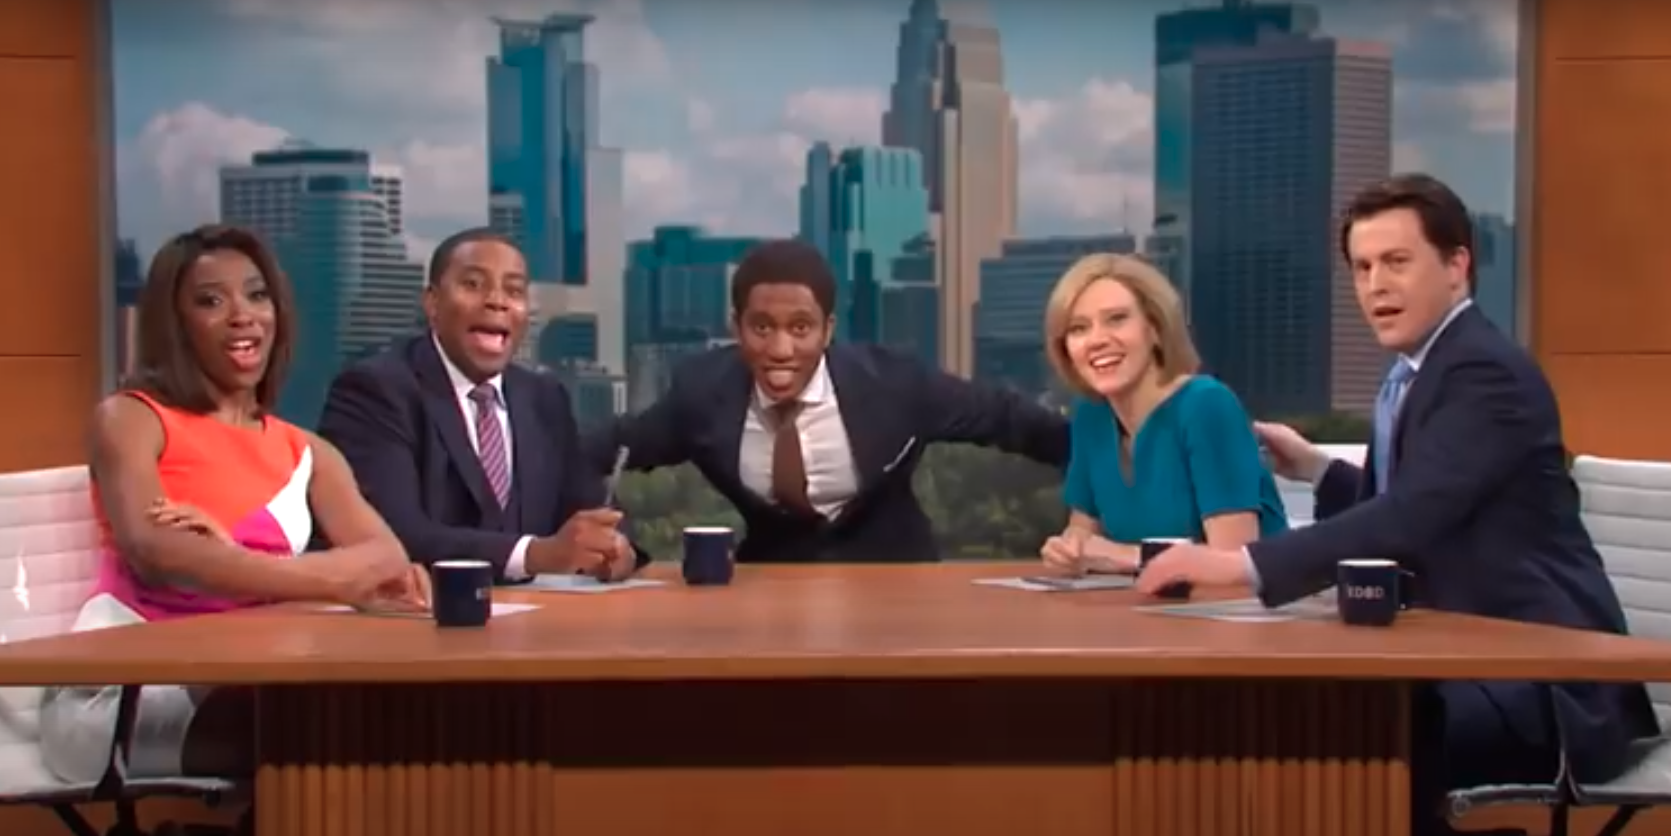 Anchors on a mock morning show on the Saturday Night Live cold open are seen sitting around a table. Pictured are from left to right, Ego Nwodim, Kenan Thompson, Chris Redd, Kate McKinnon and Alex Moffat.